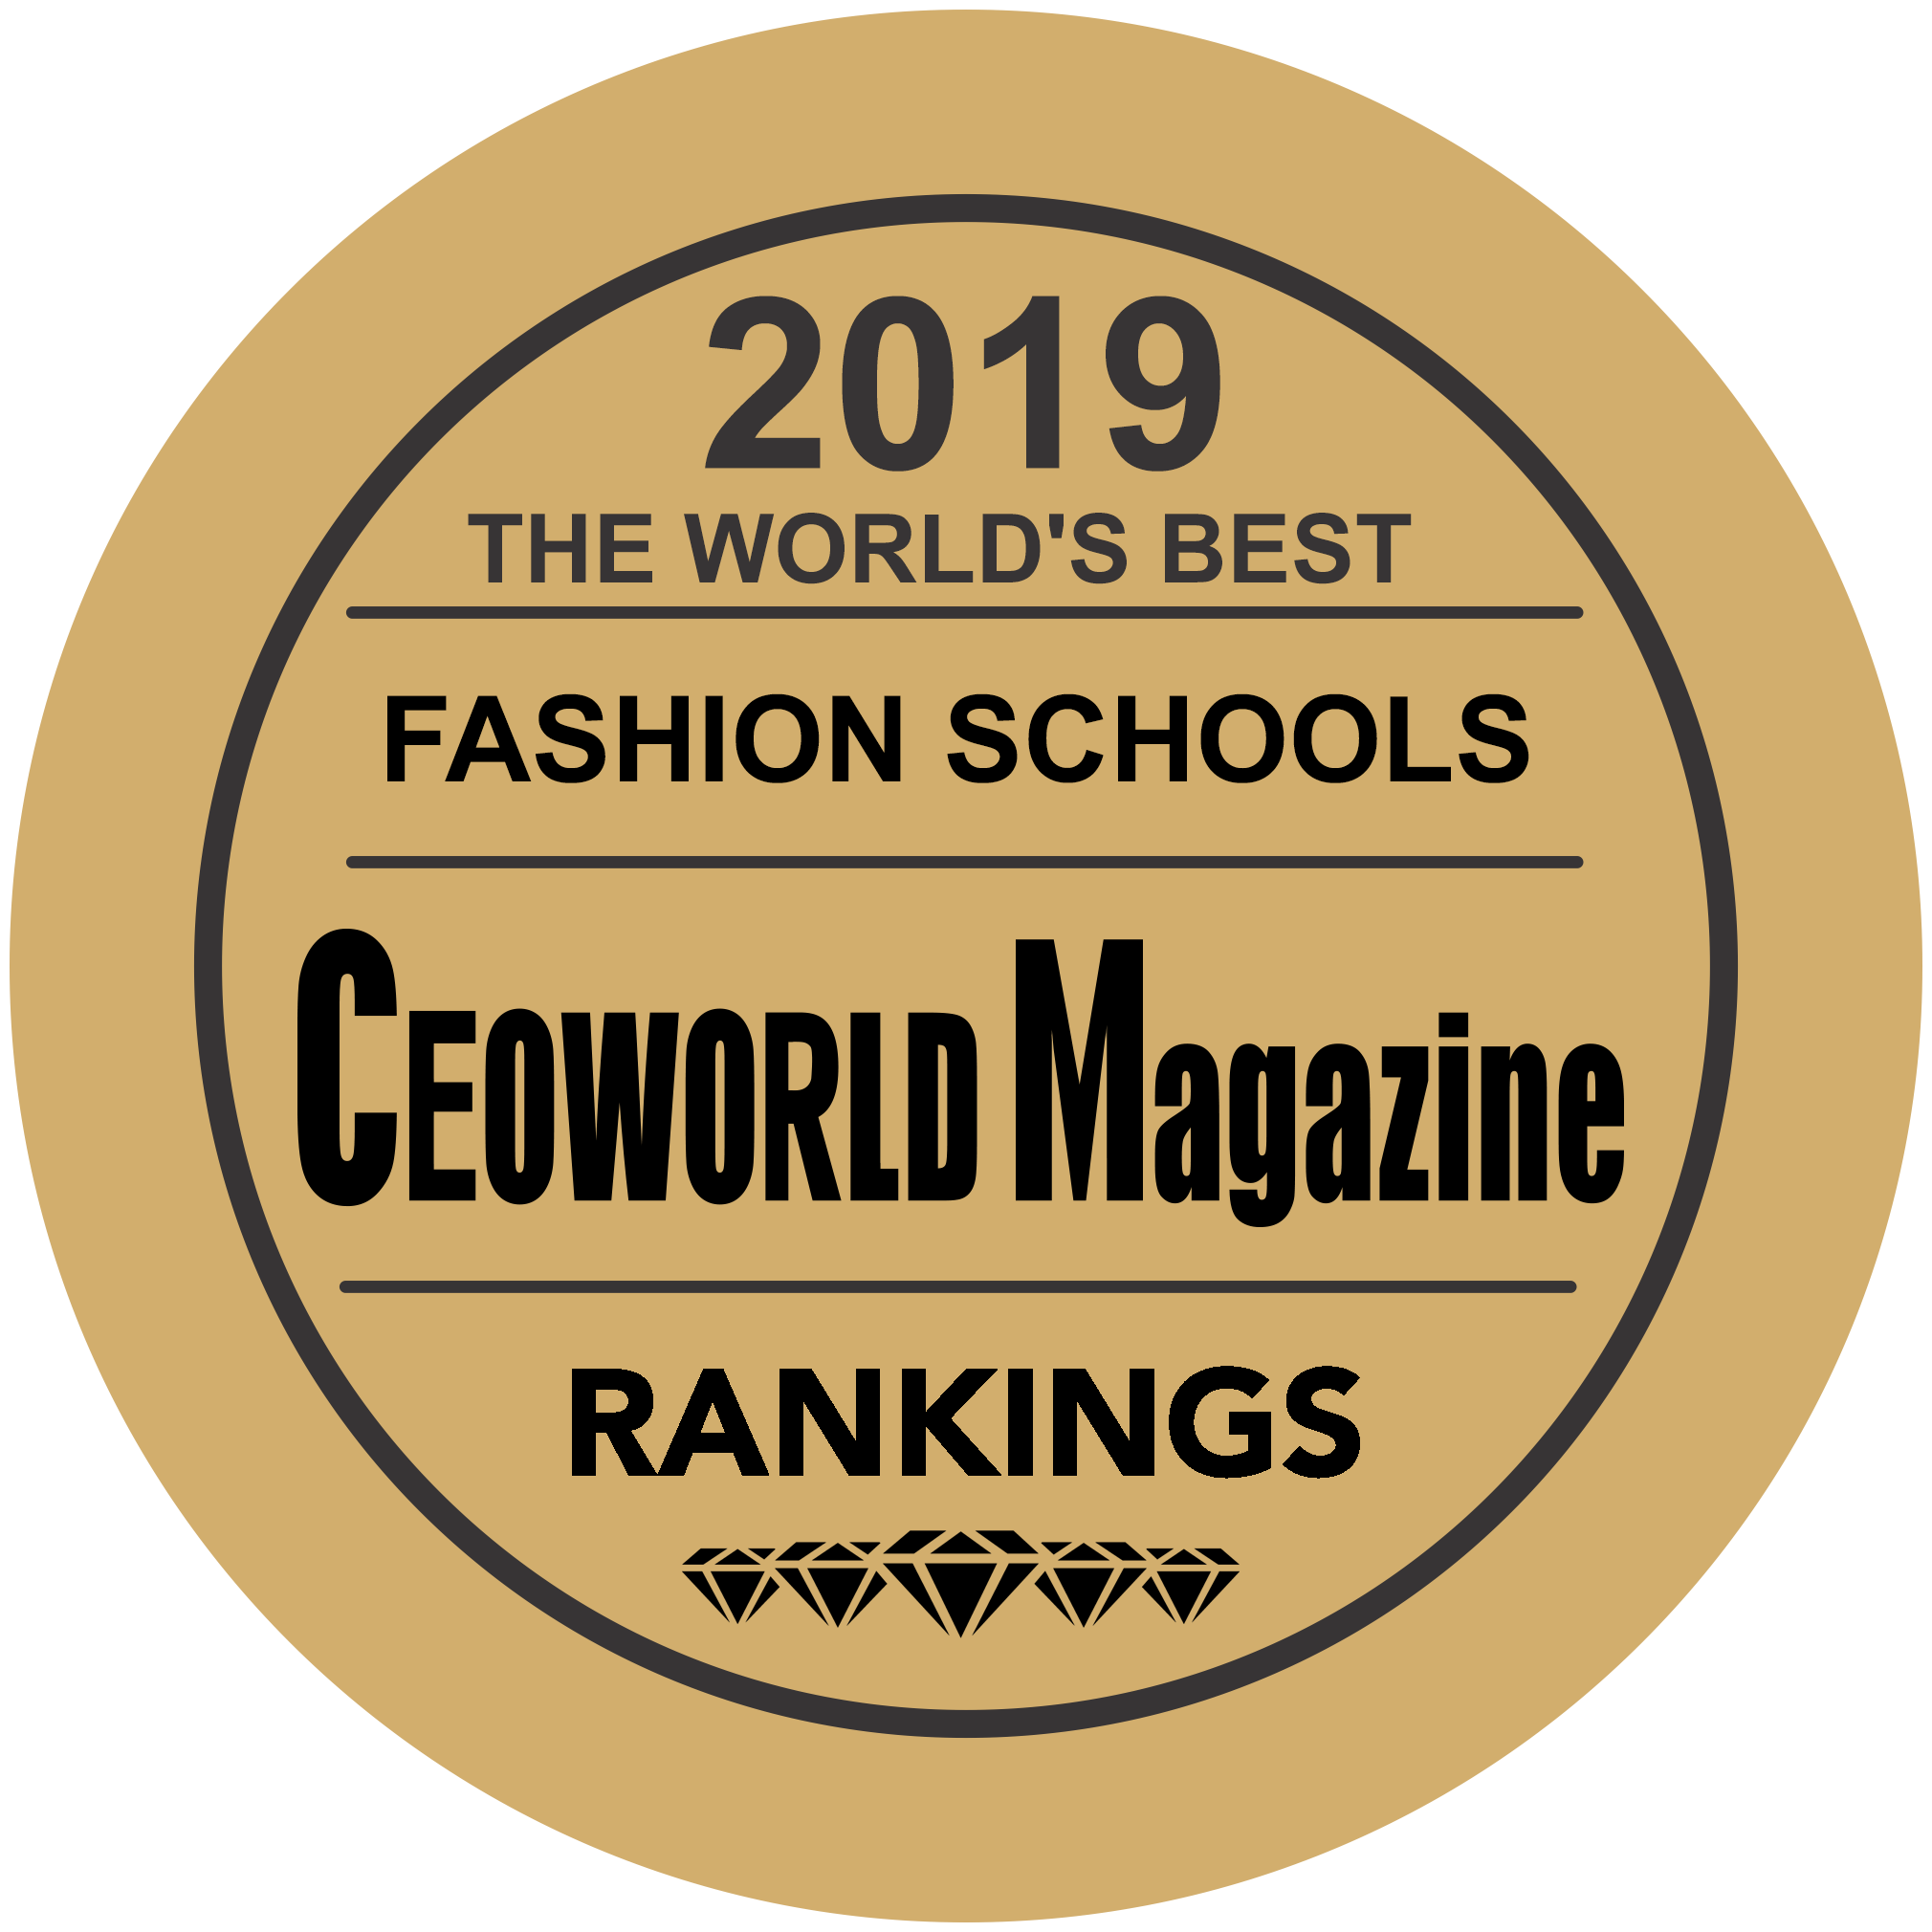 Best Fashion Schools In The World For 2019 | CEOWORLD magazine